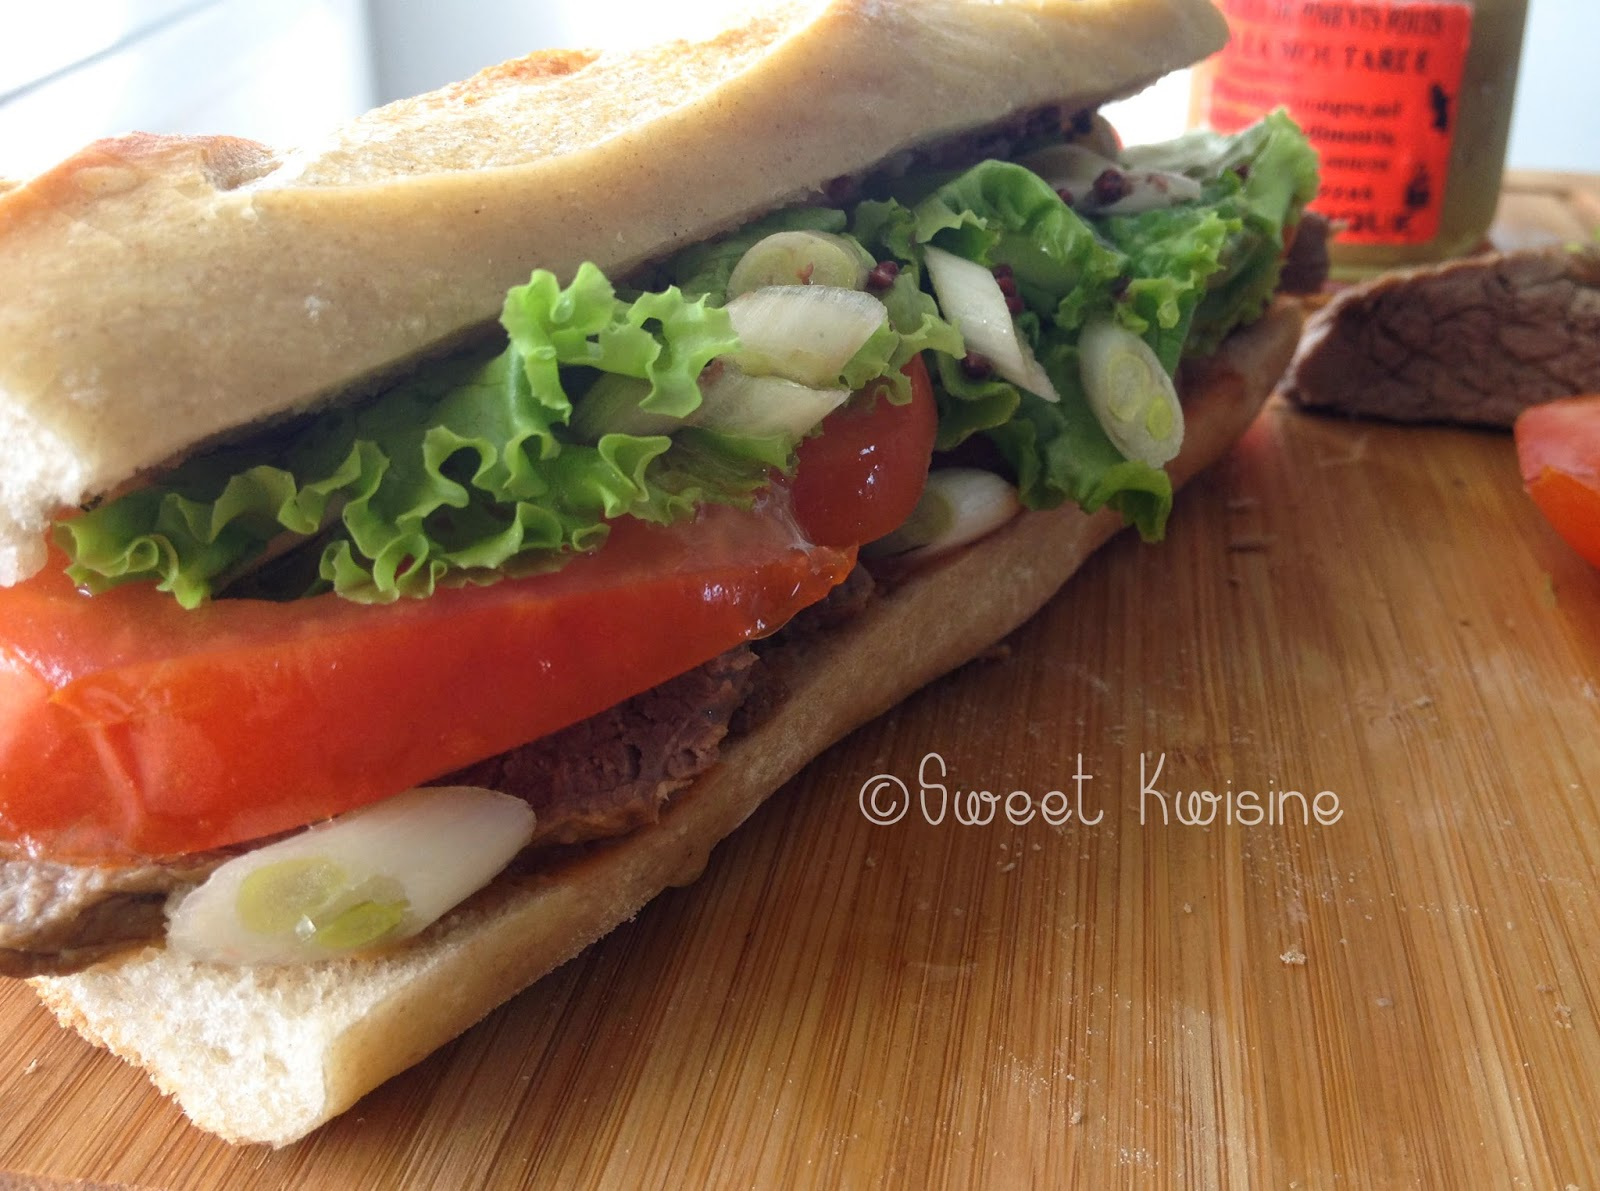 sweet kwisine, sandwich, steack, boeuf, tomate, piment, moutarde,